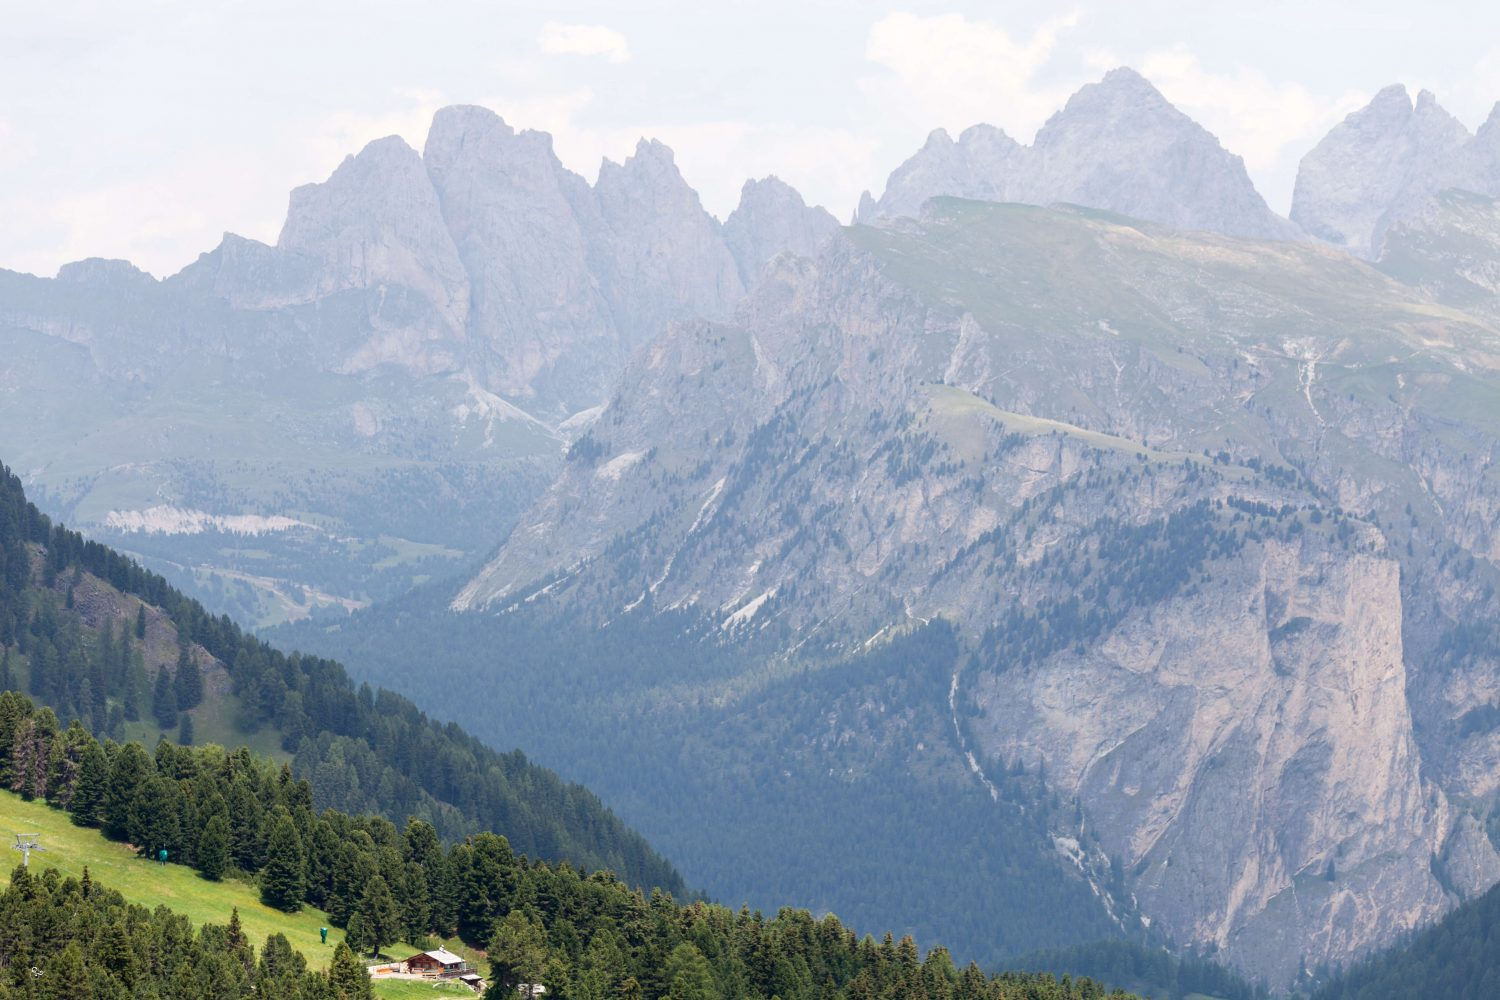 Dolomites Italy Hiking Roadtrip Route - Nowhere & Everywhere - Lis Dingjan Sustainable Eco